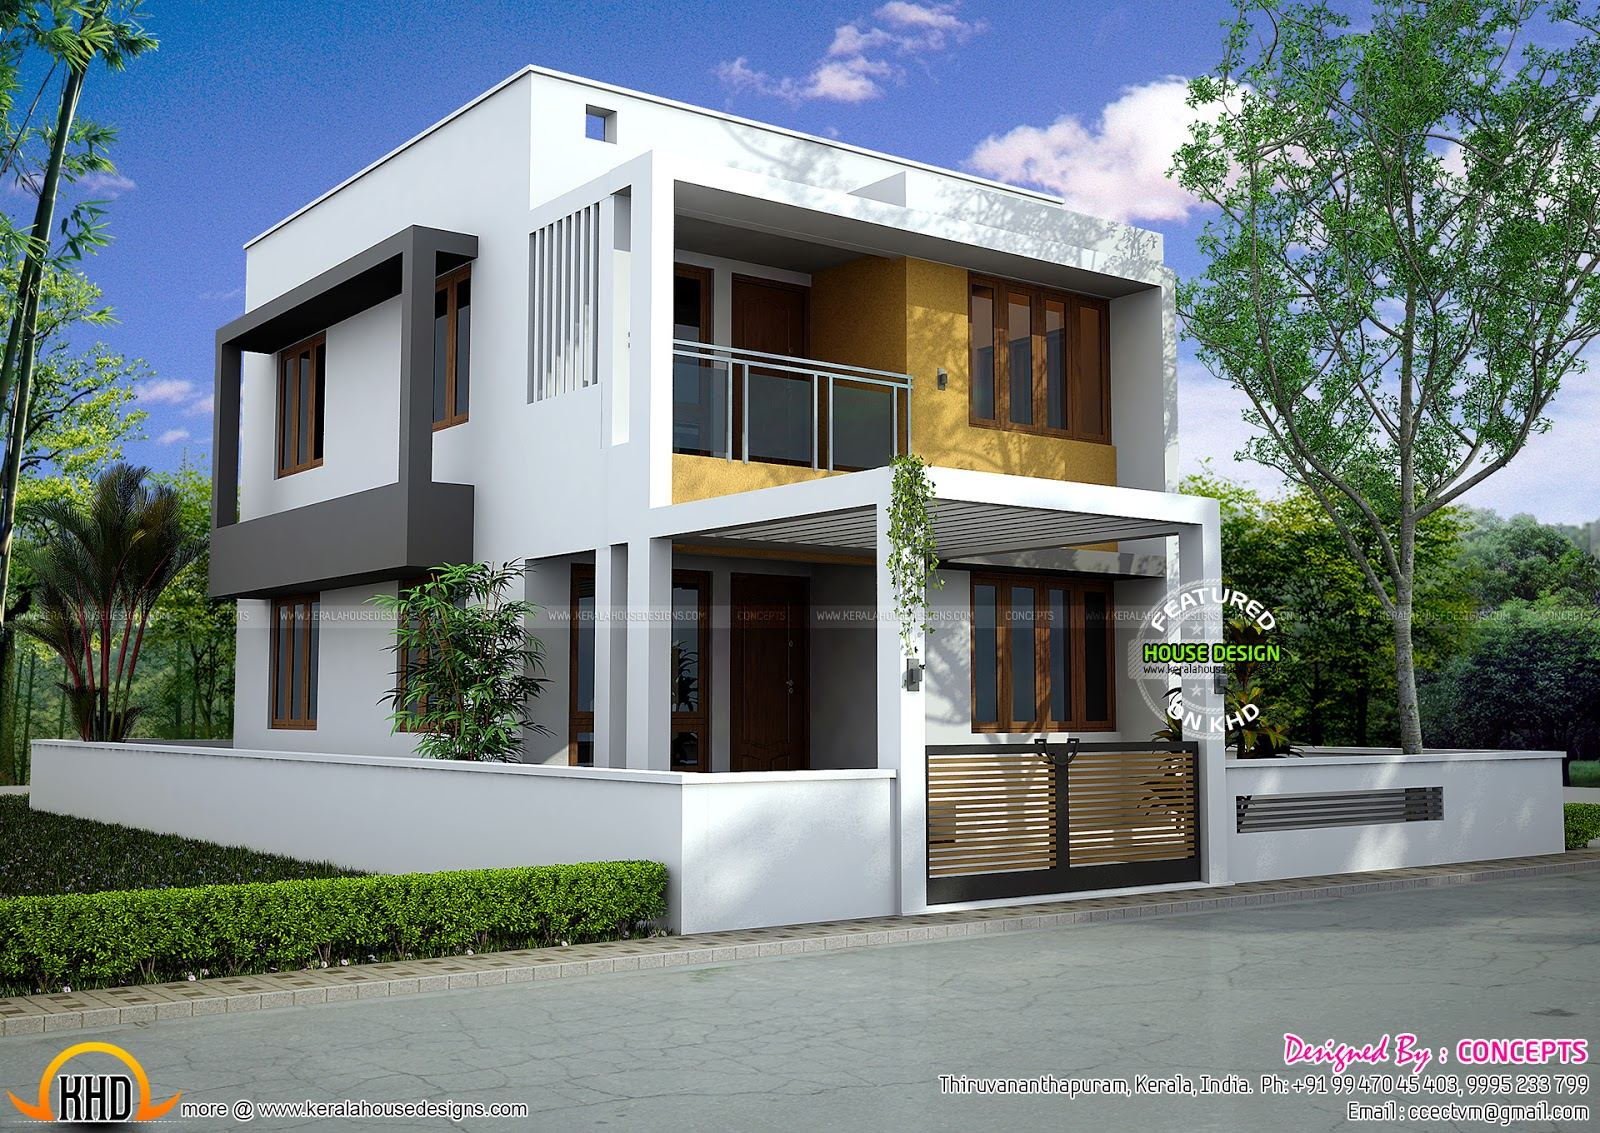 Floor plan of modern 3 bedroom house kerala home design for 2 bhk house designs in india